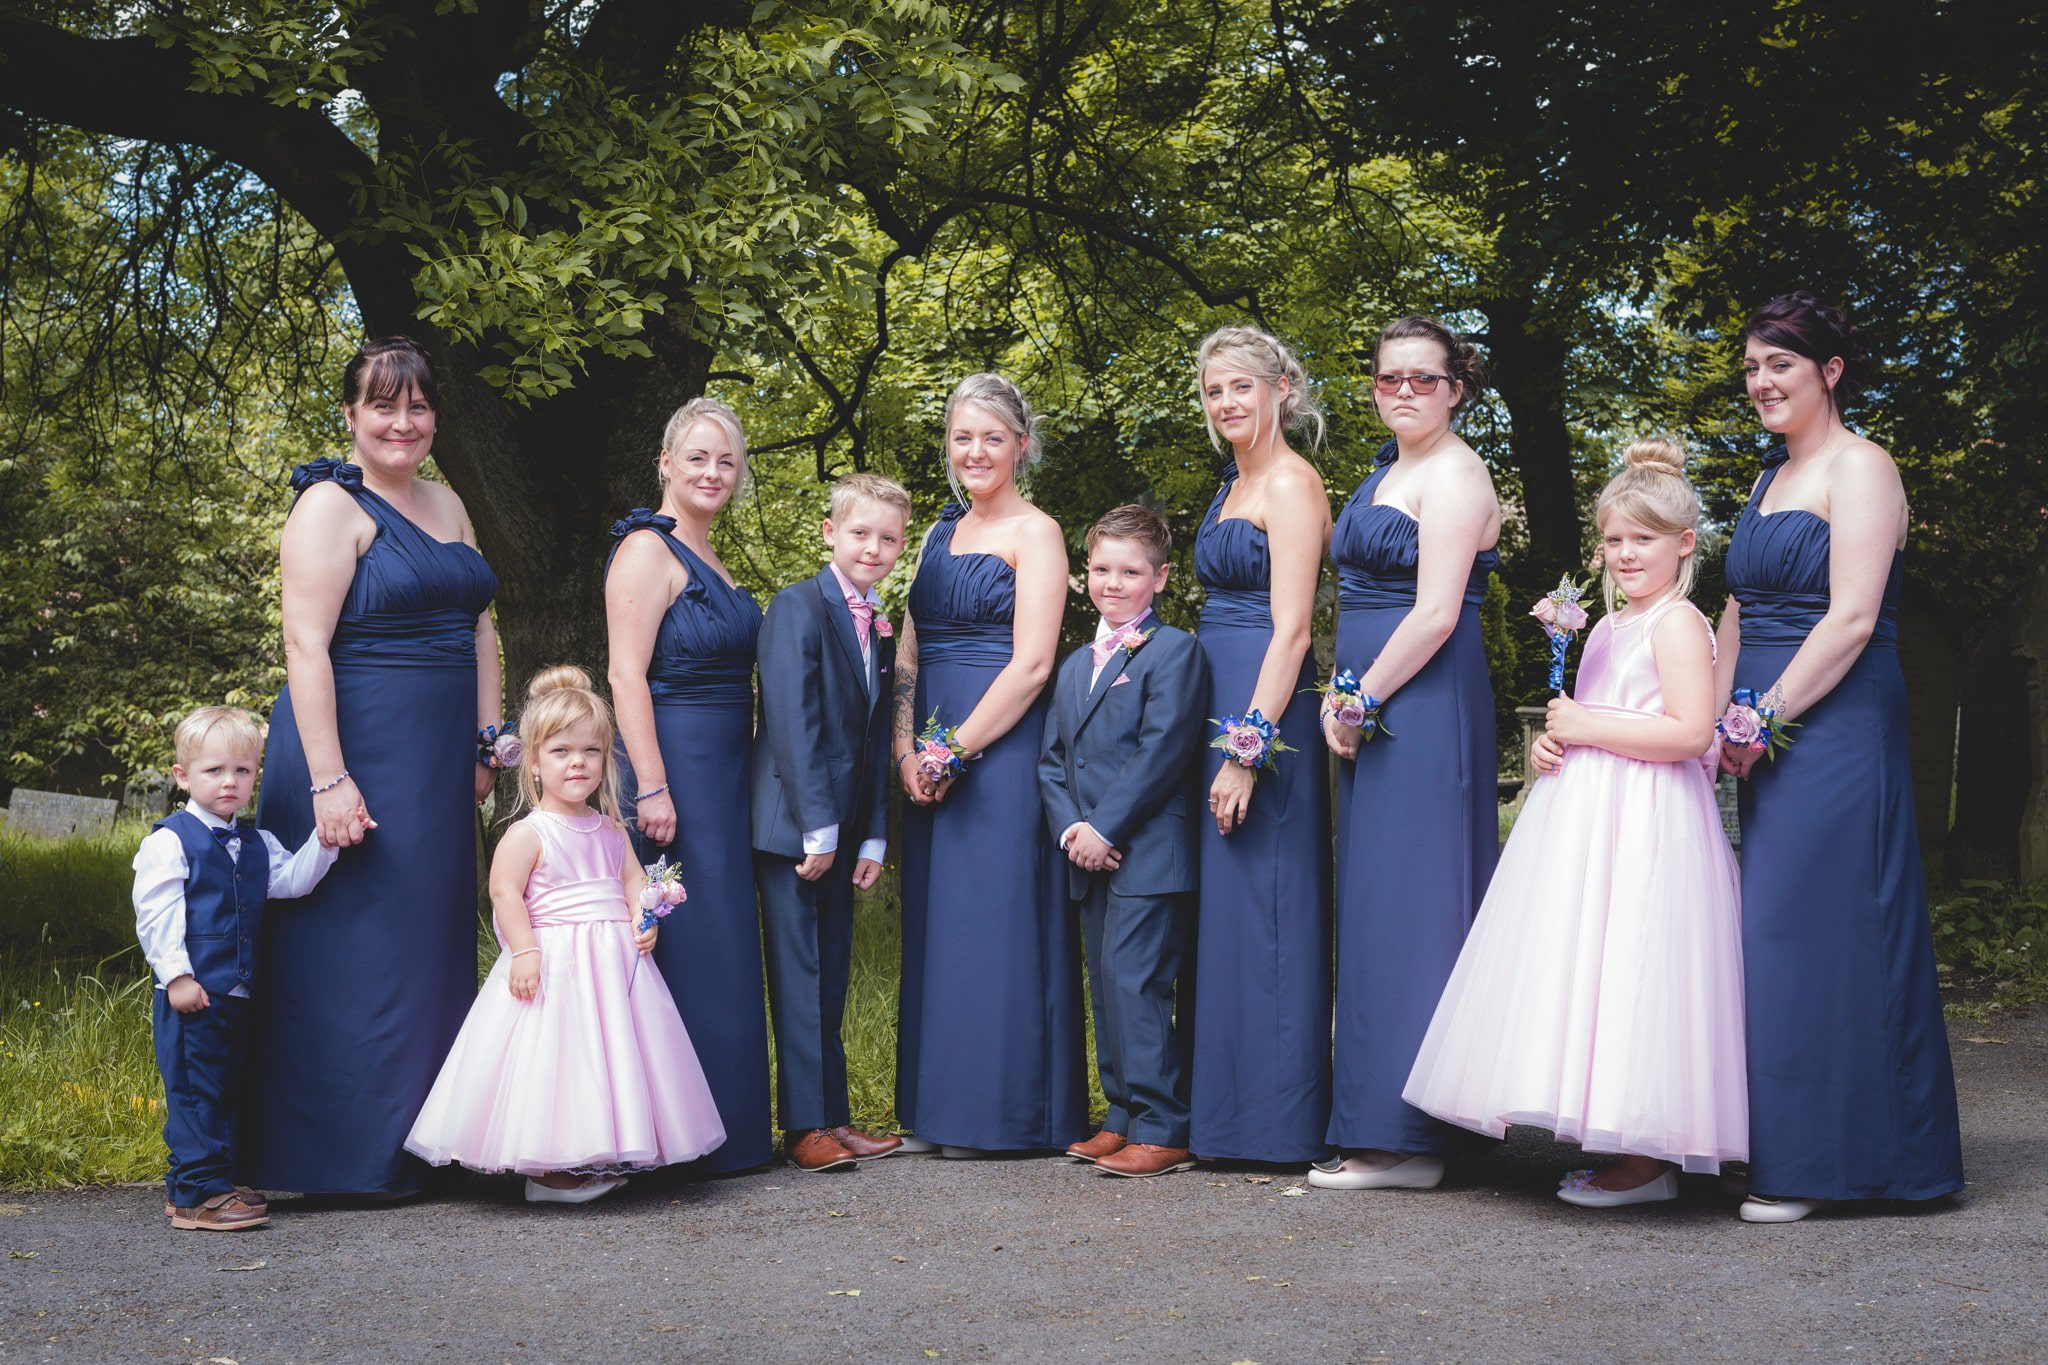 St Peter's Church - Bridal Party